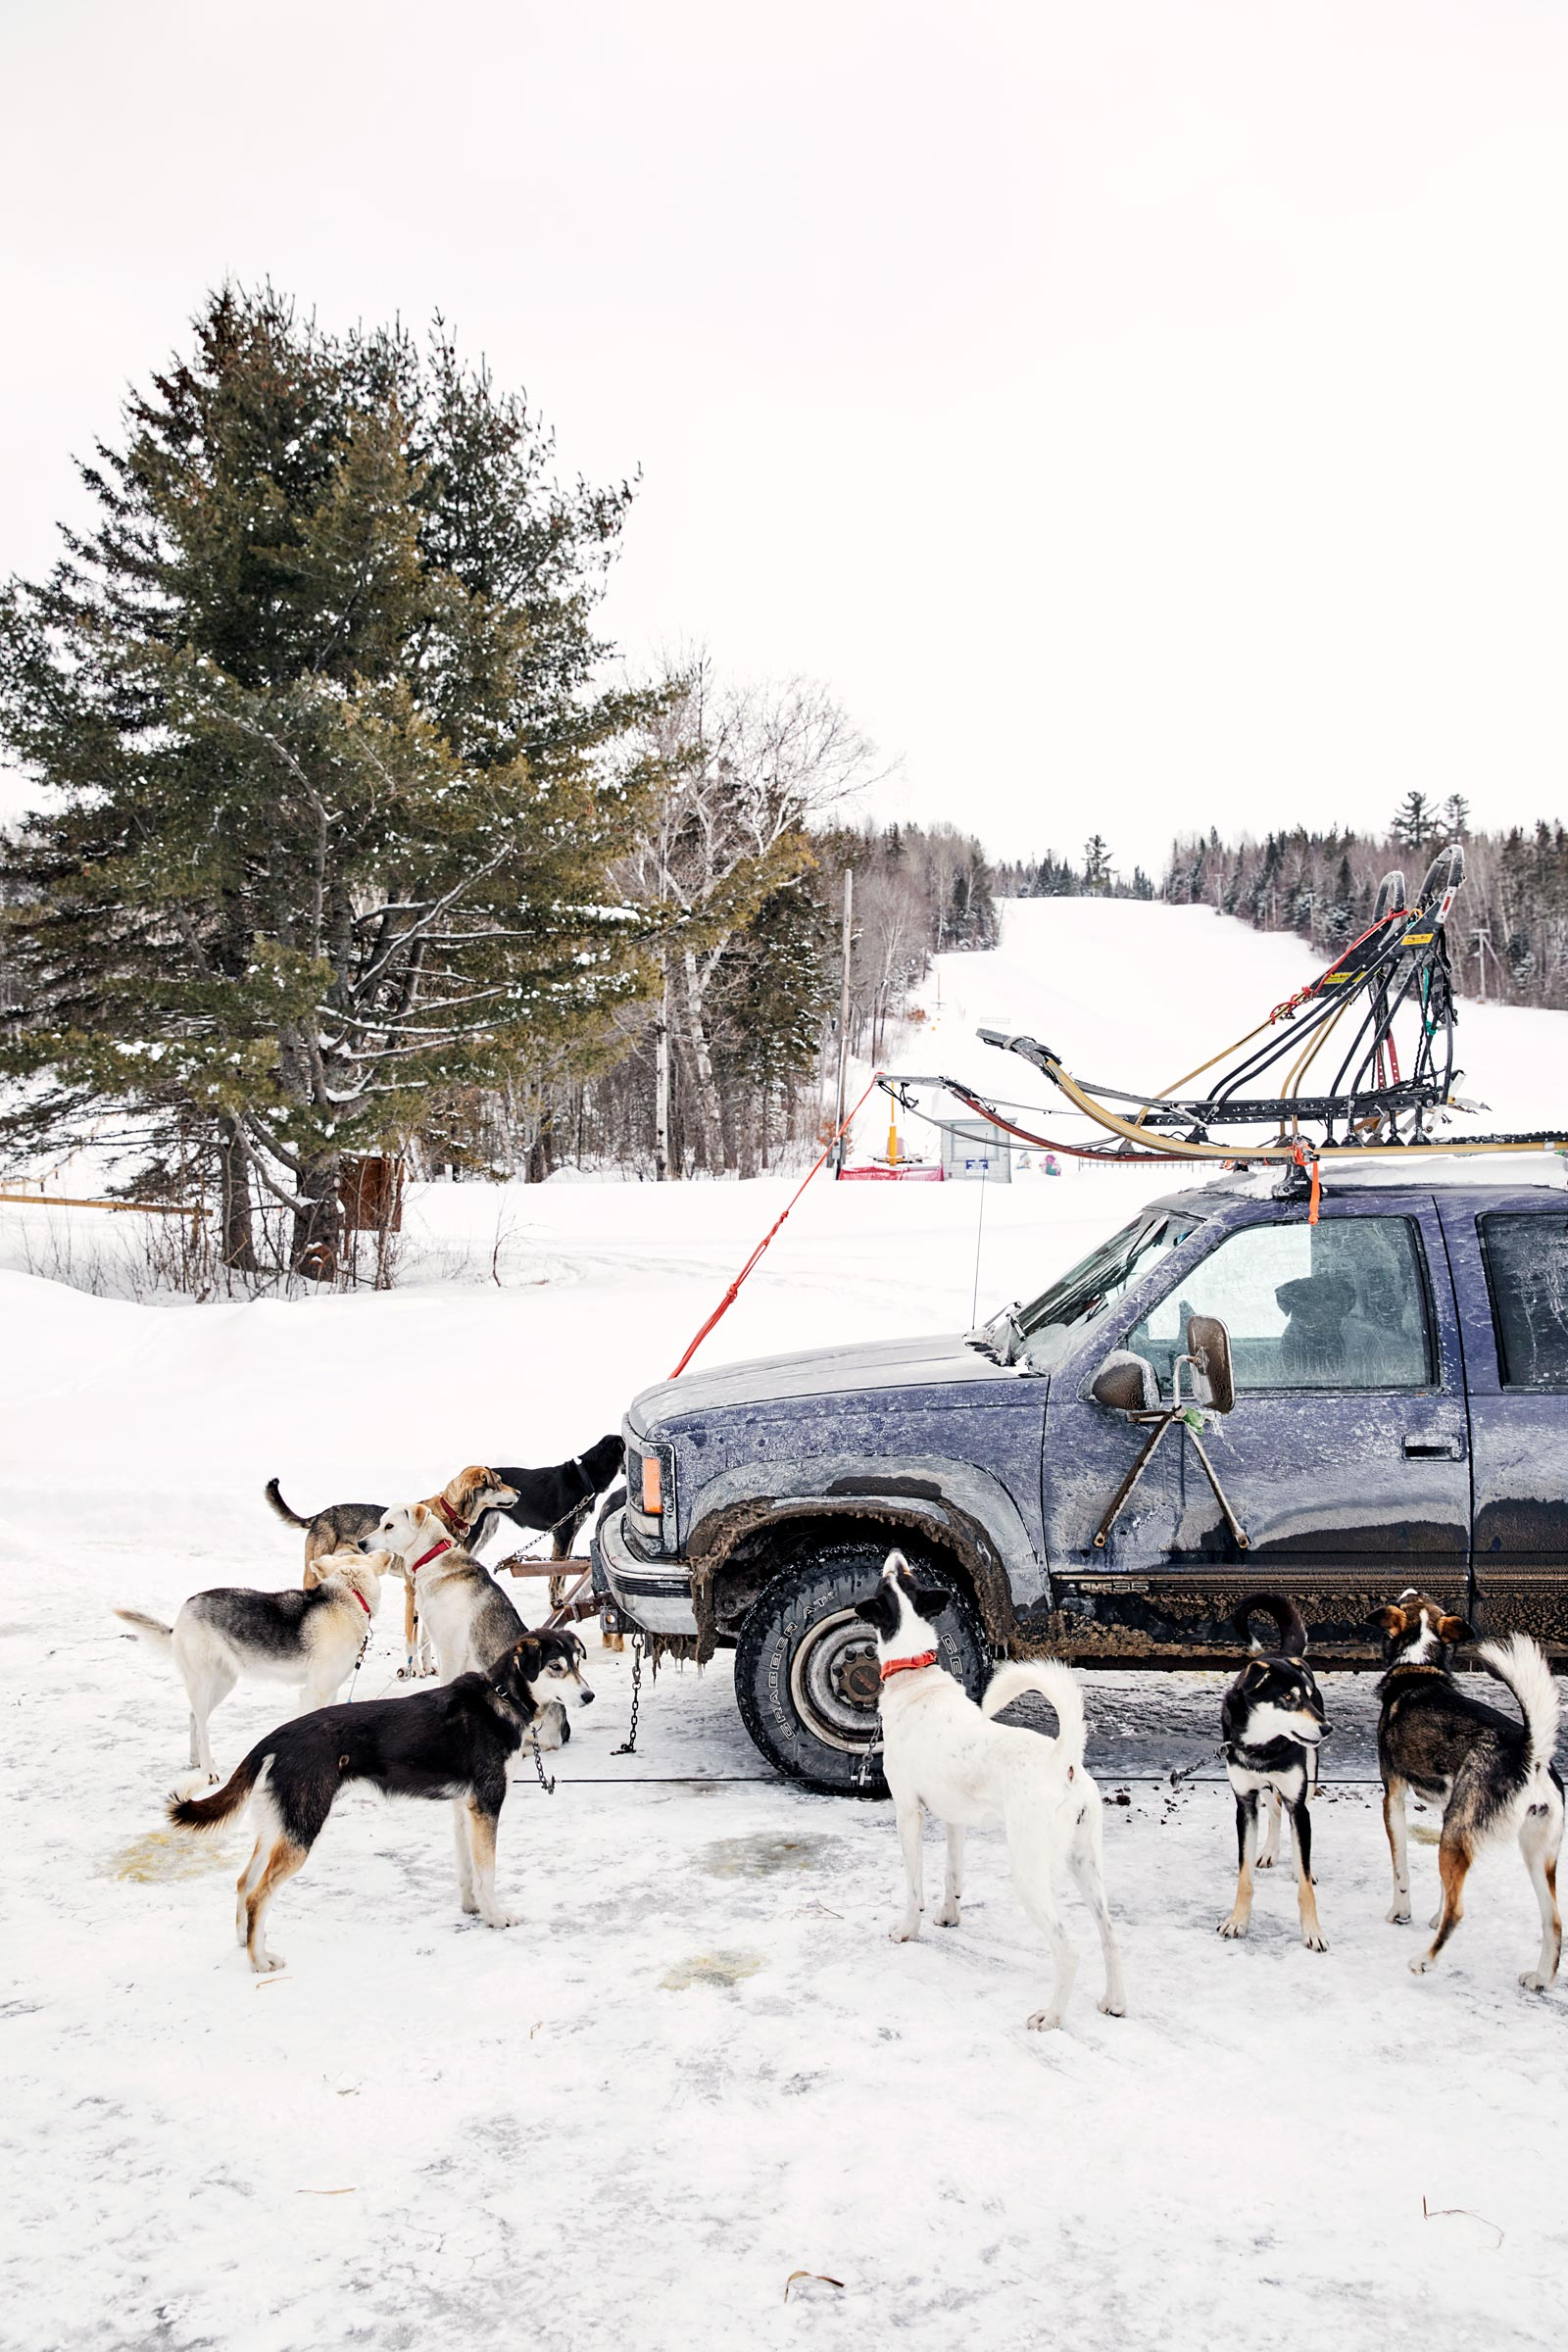 M_WilsonCan_AM-Dog-Sled00007